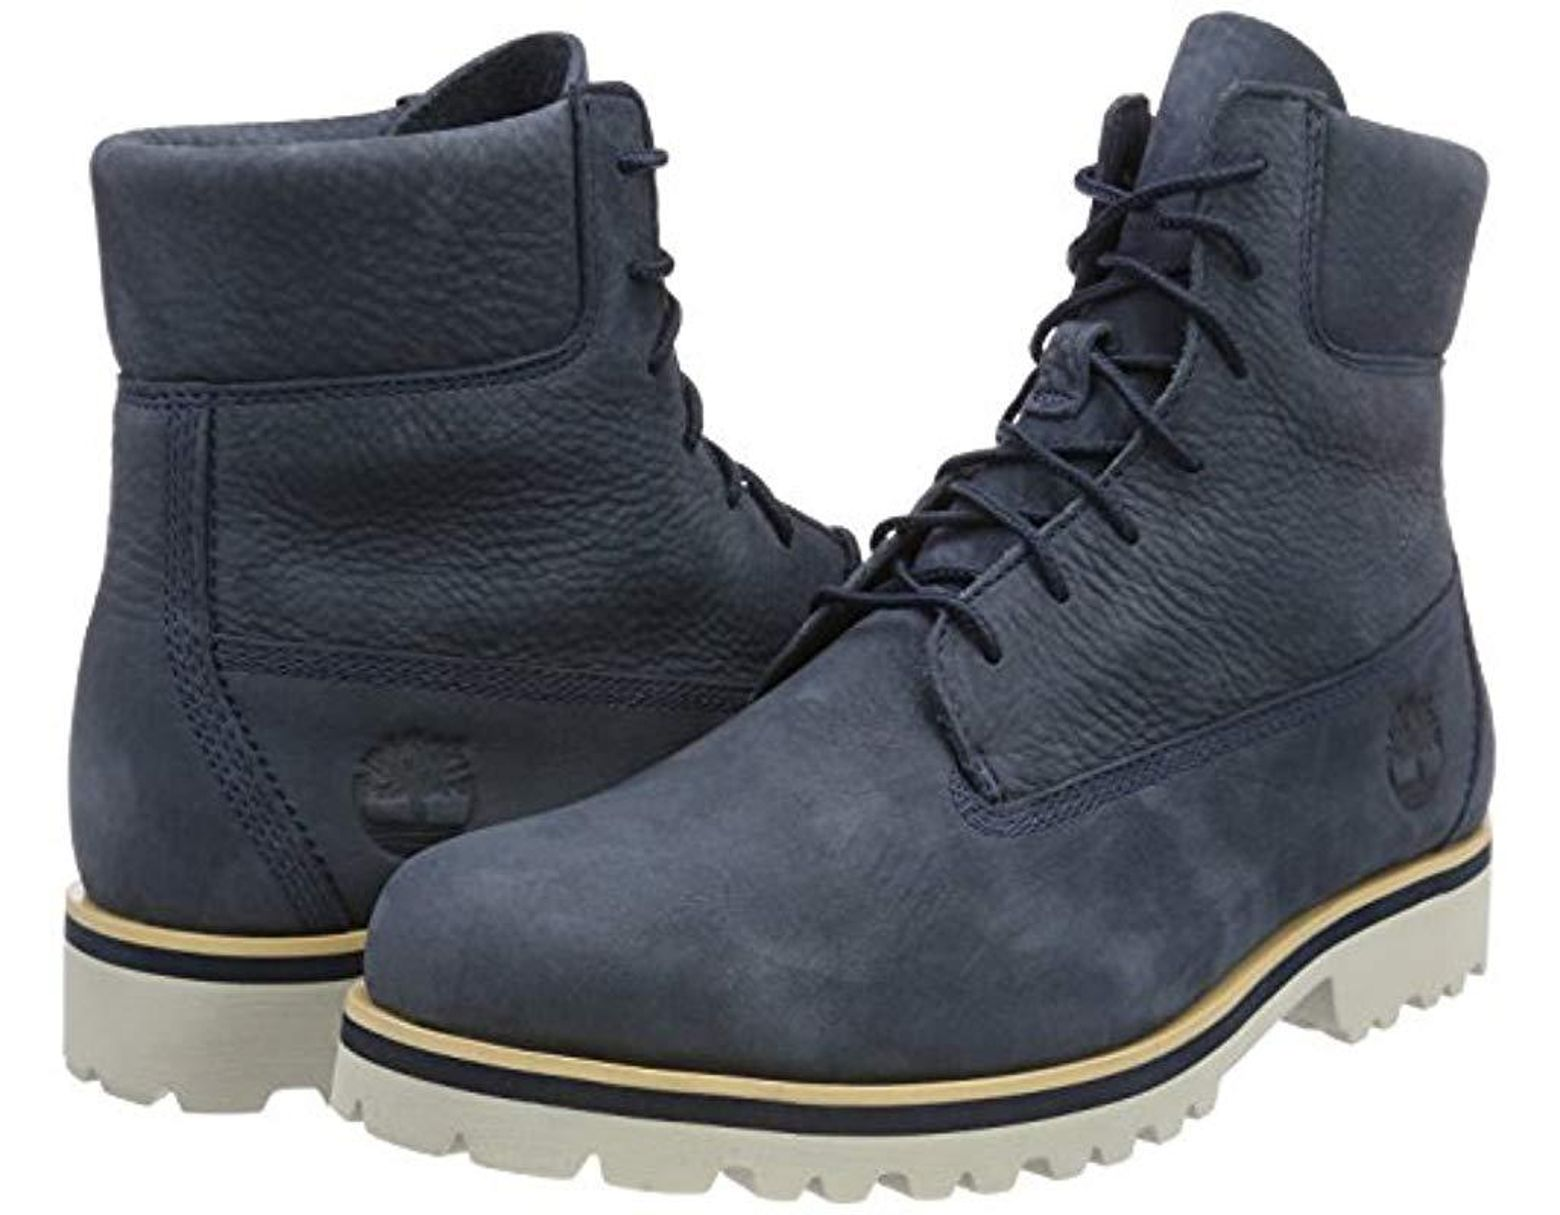 5908f506 Timberland Chilmark 6 Inch Classic Boots in Blue for Men - Save 31% - Lyst